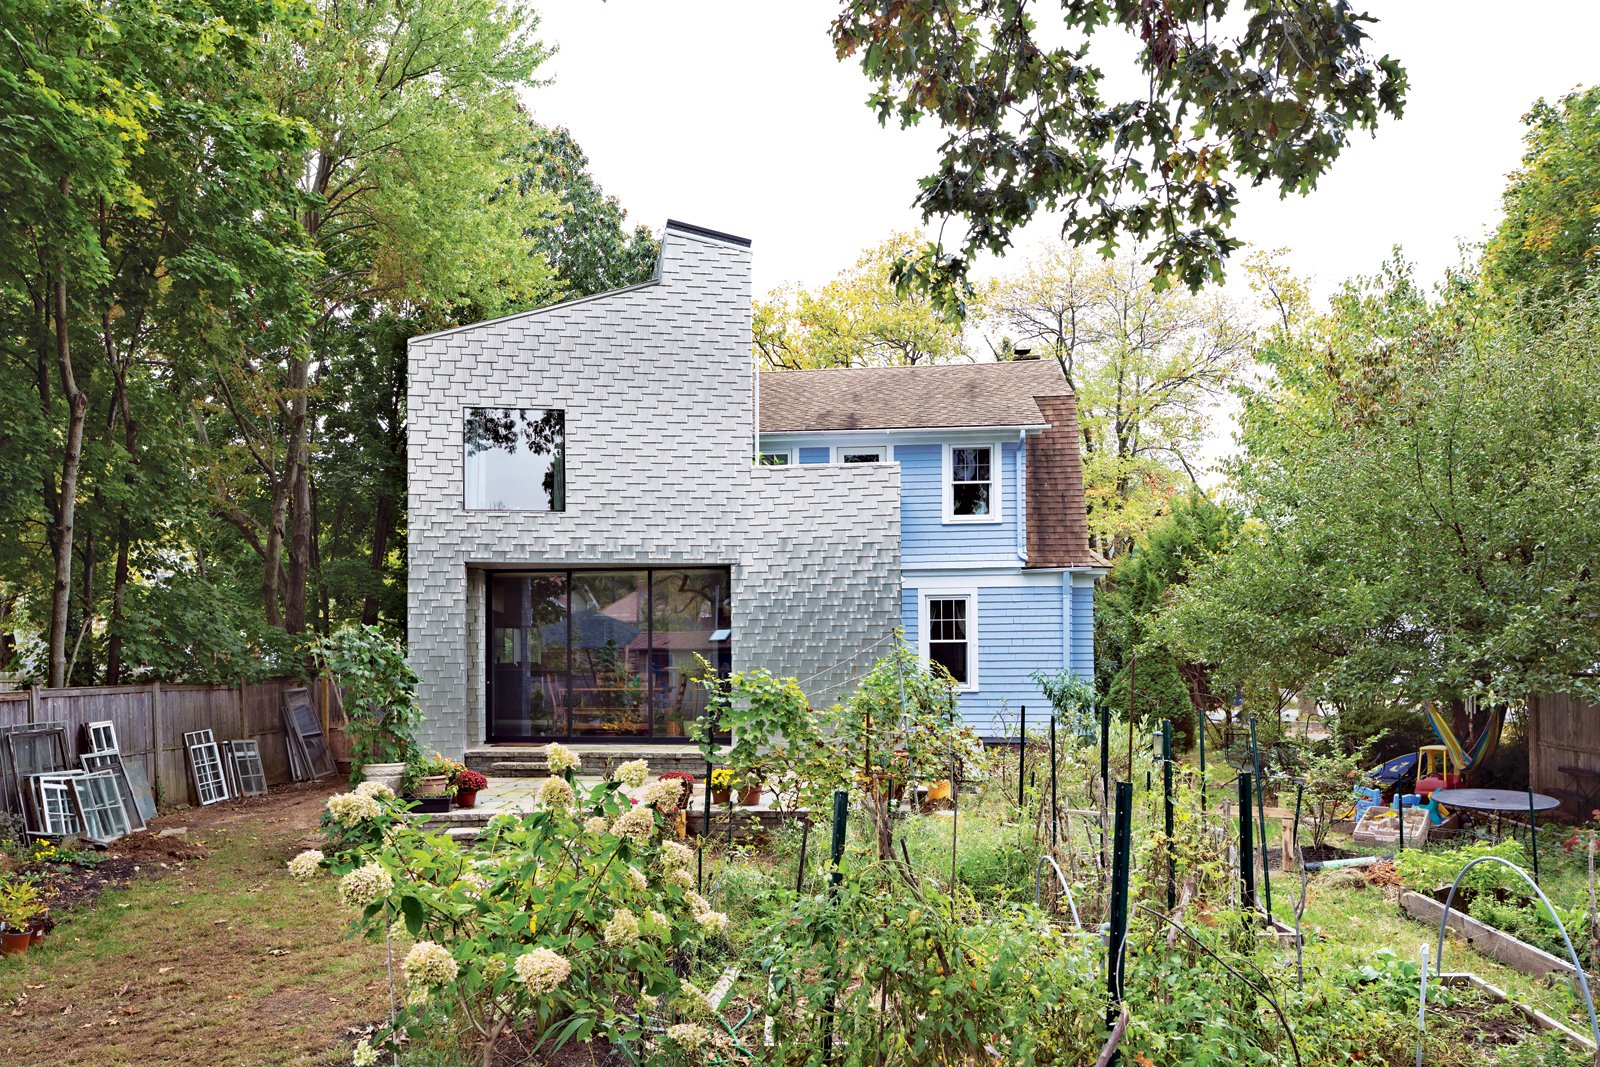 A Traditional Shingle-Clad Home in Connecticut  The metal shingles that cover the addition of this Connecticut home are on the cutting edge of modern design.  Photo by: Andrew Rowat